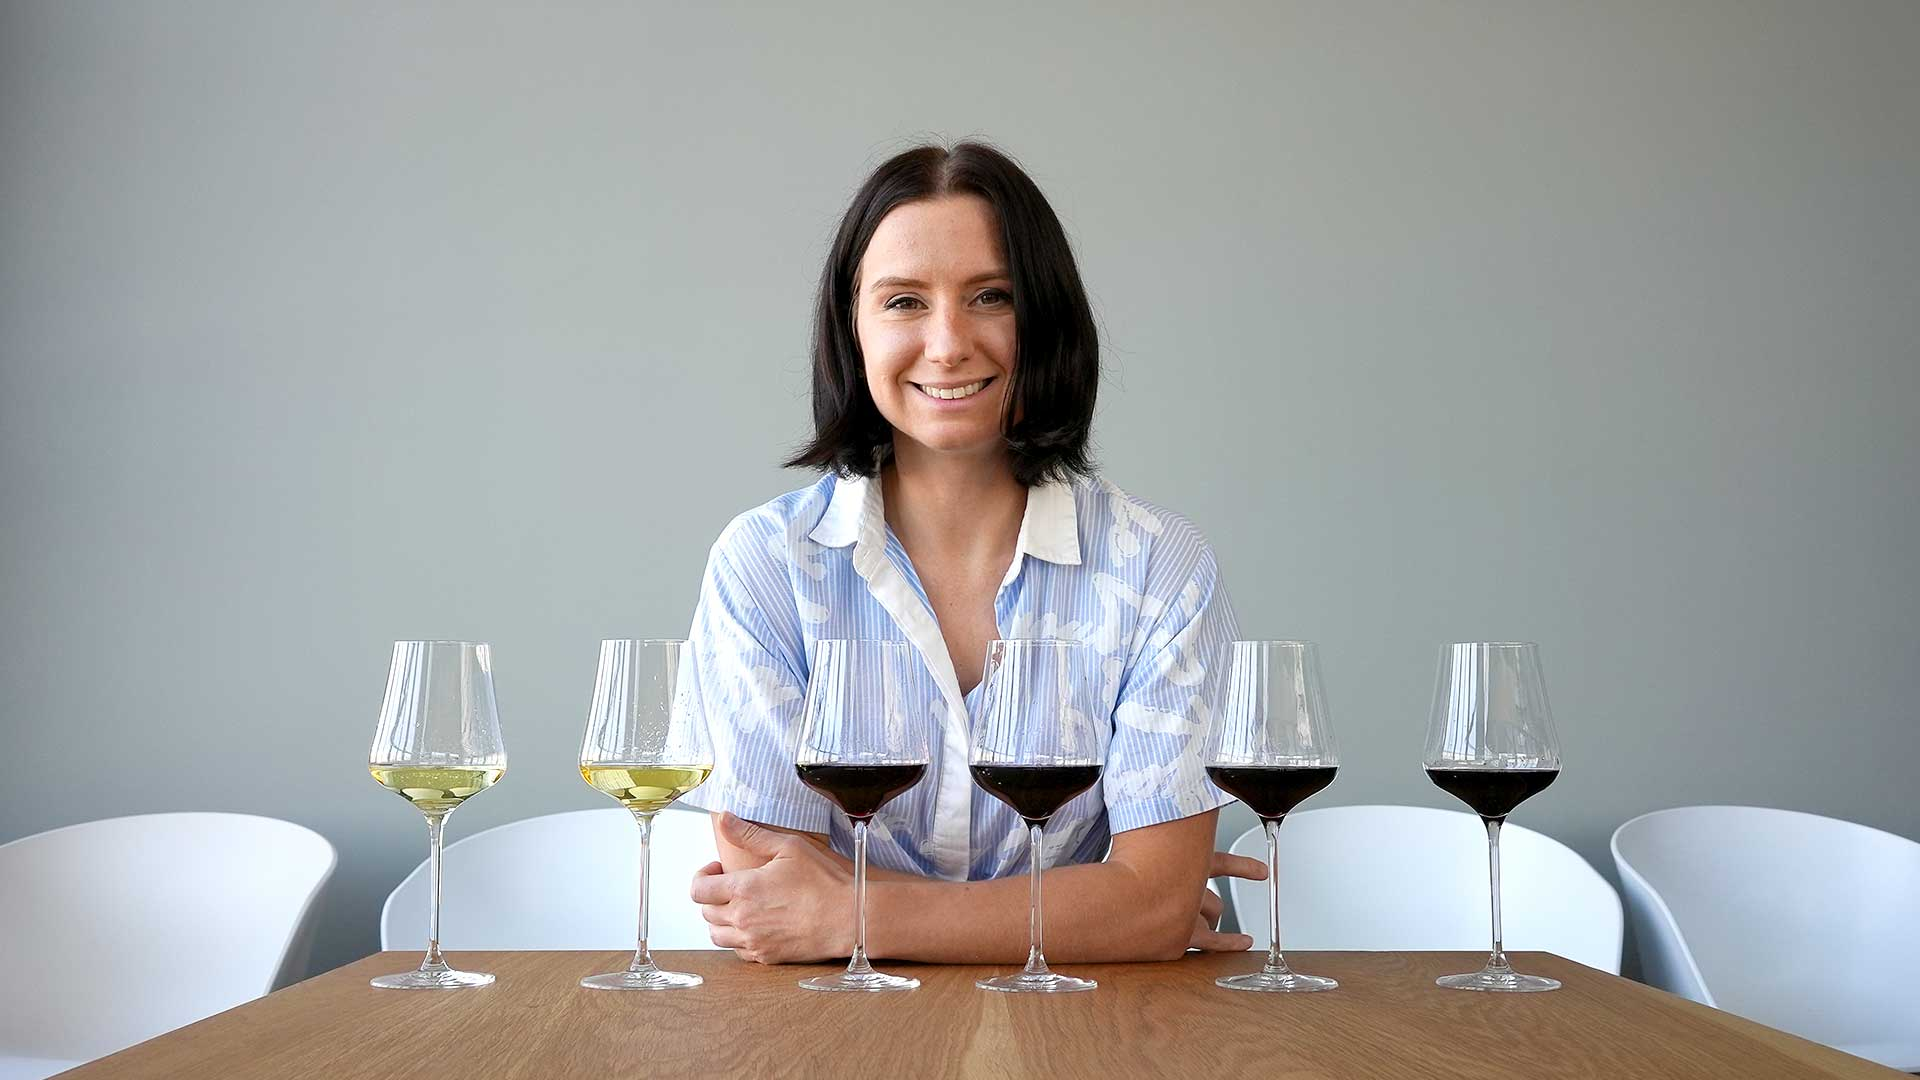 Madeline Puckette with six Napa Valley wines